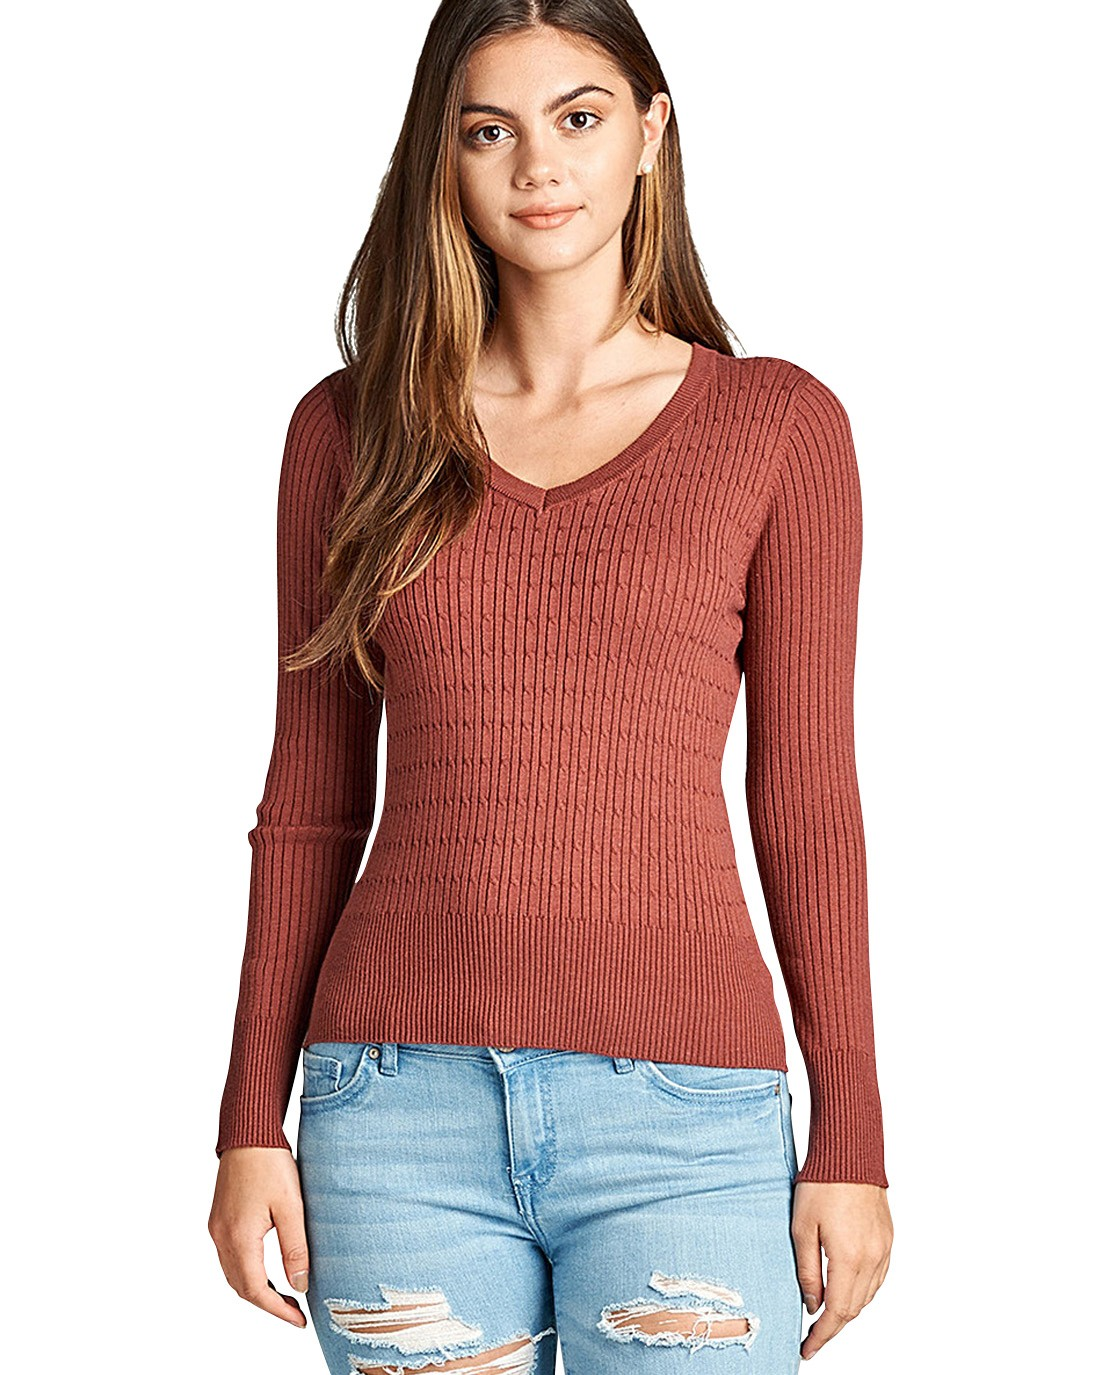 A ribbed knit top featuring a marled pattern. a V-neckline. long sleeves. and a form-fitting silhouette-id.33669c